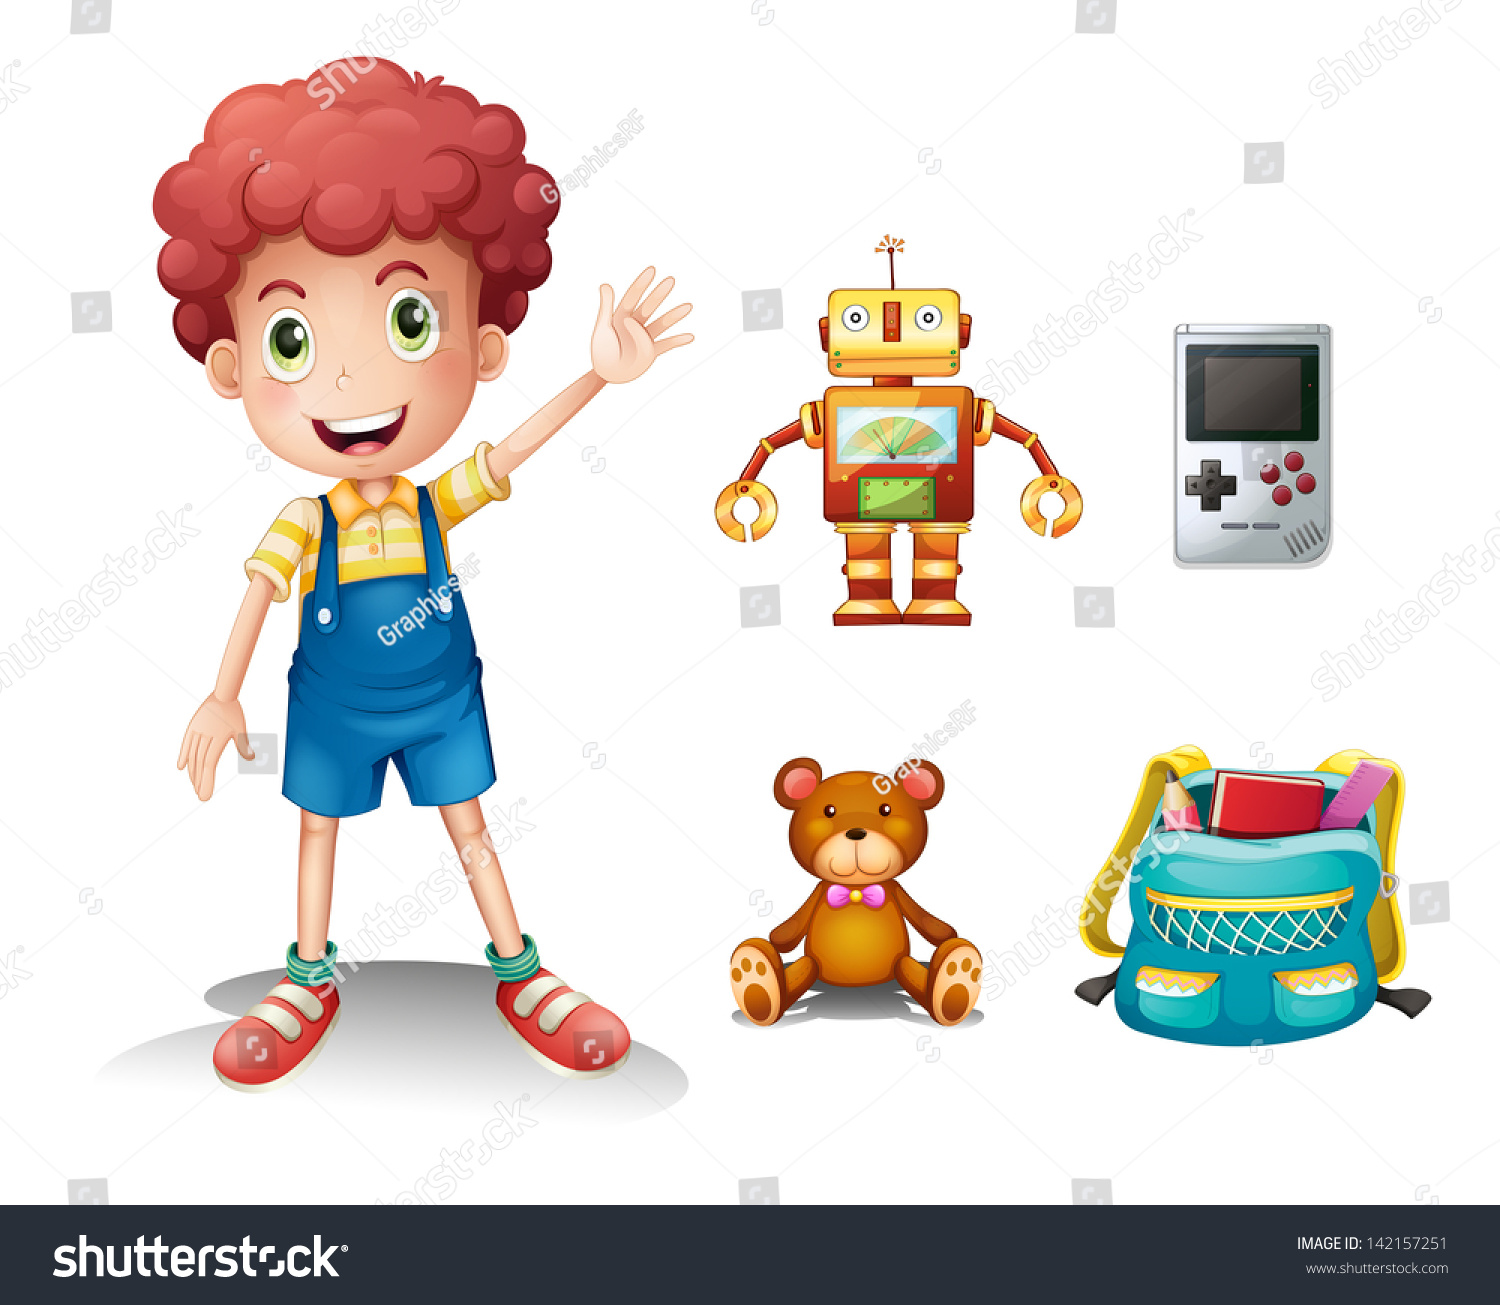 White Boys Toys : Illustration of a young boy and his toys on white